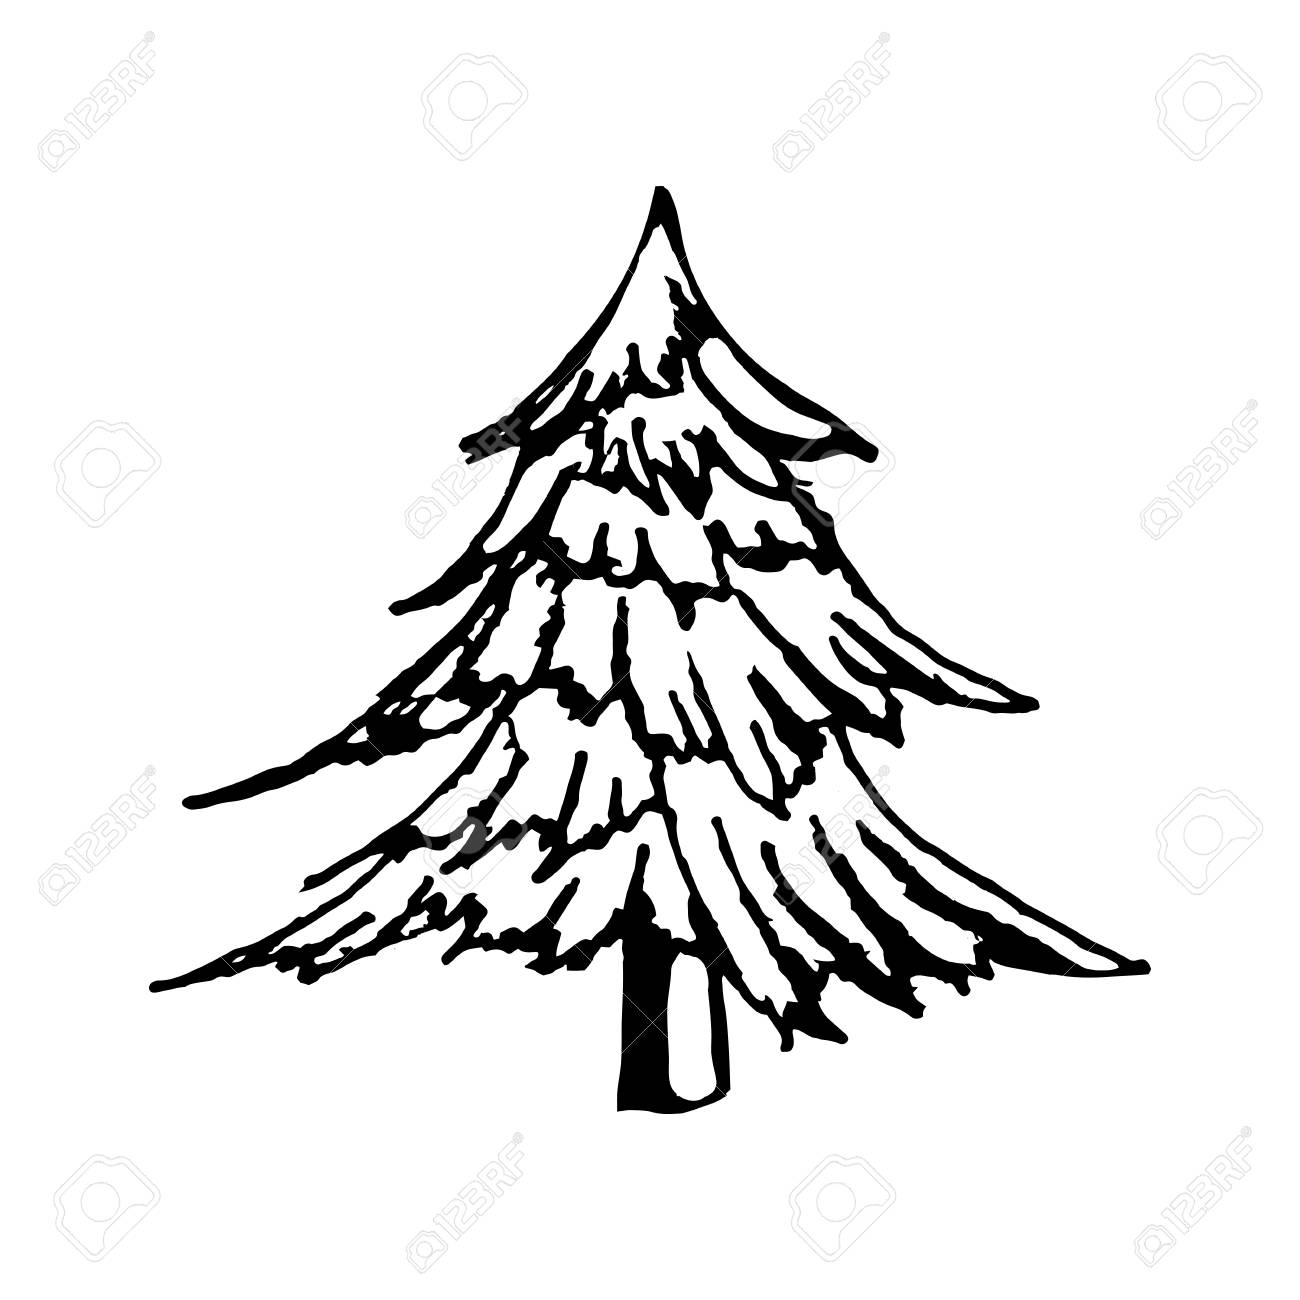 1300x1300 Hand Draw A Christmas Tree In The Style Of A Sketch, For Postcards